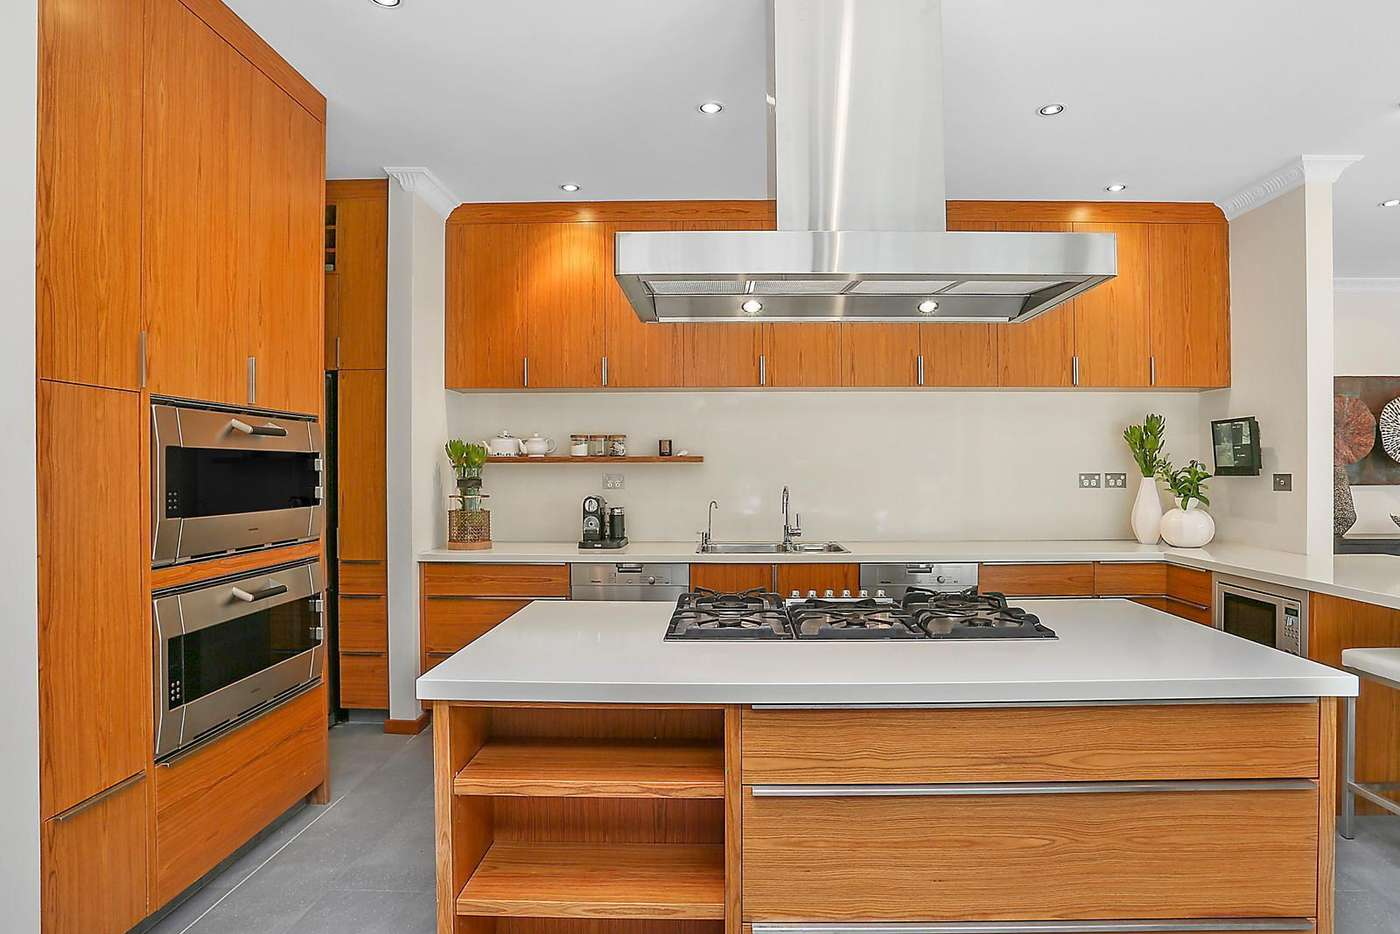 Fifth view of Homely house listing, 6 Coolong Road, Vaucluse NSW 2030